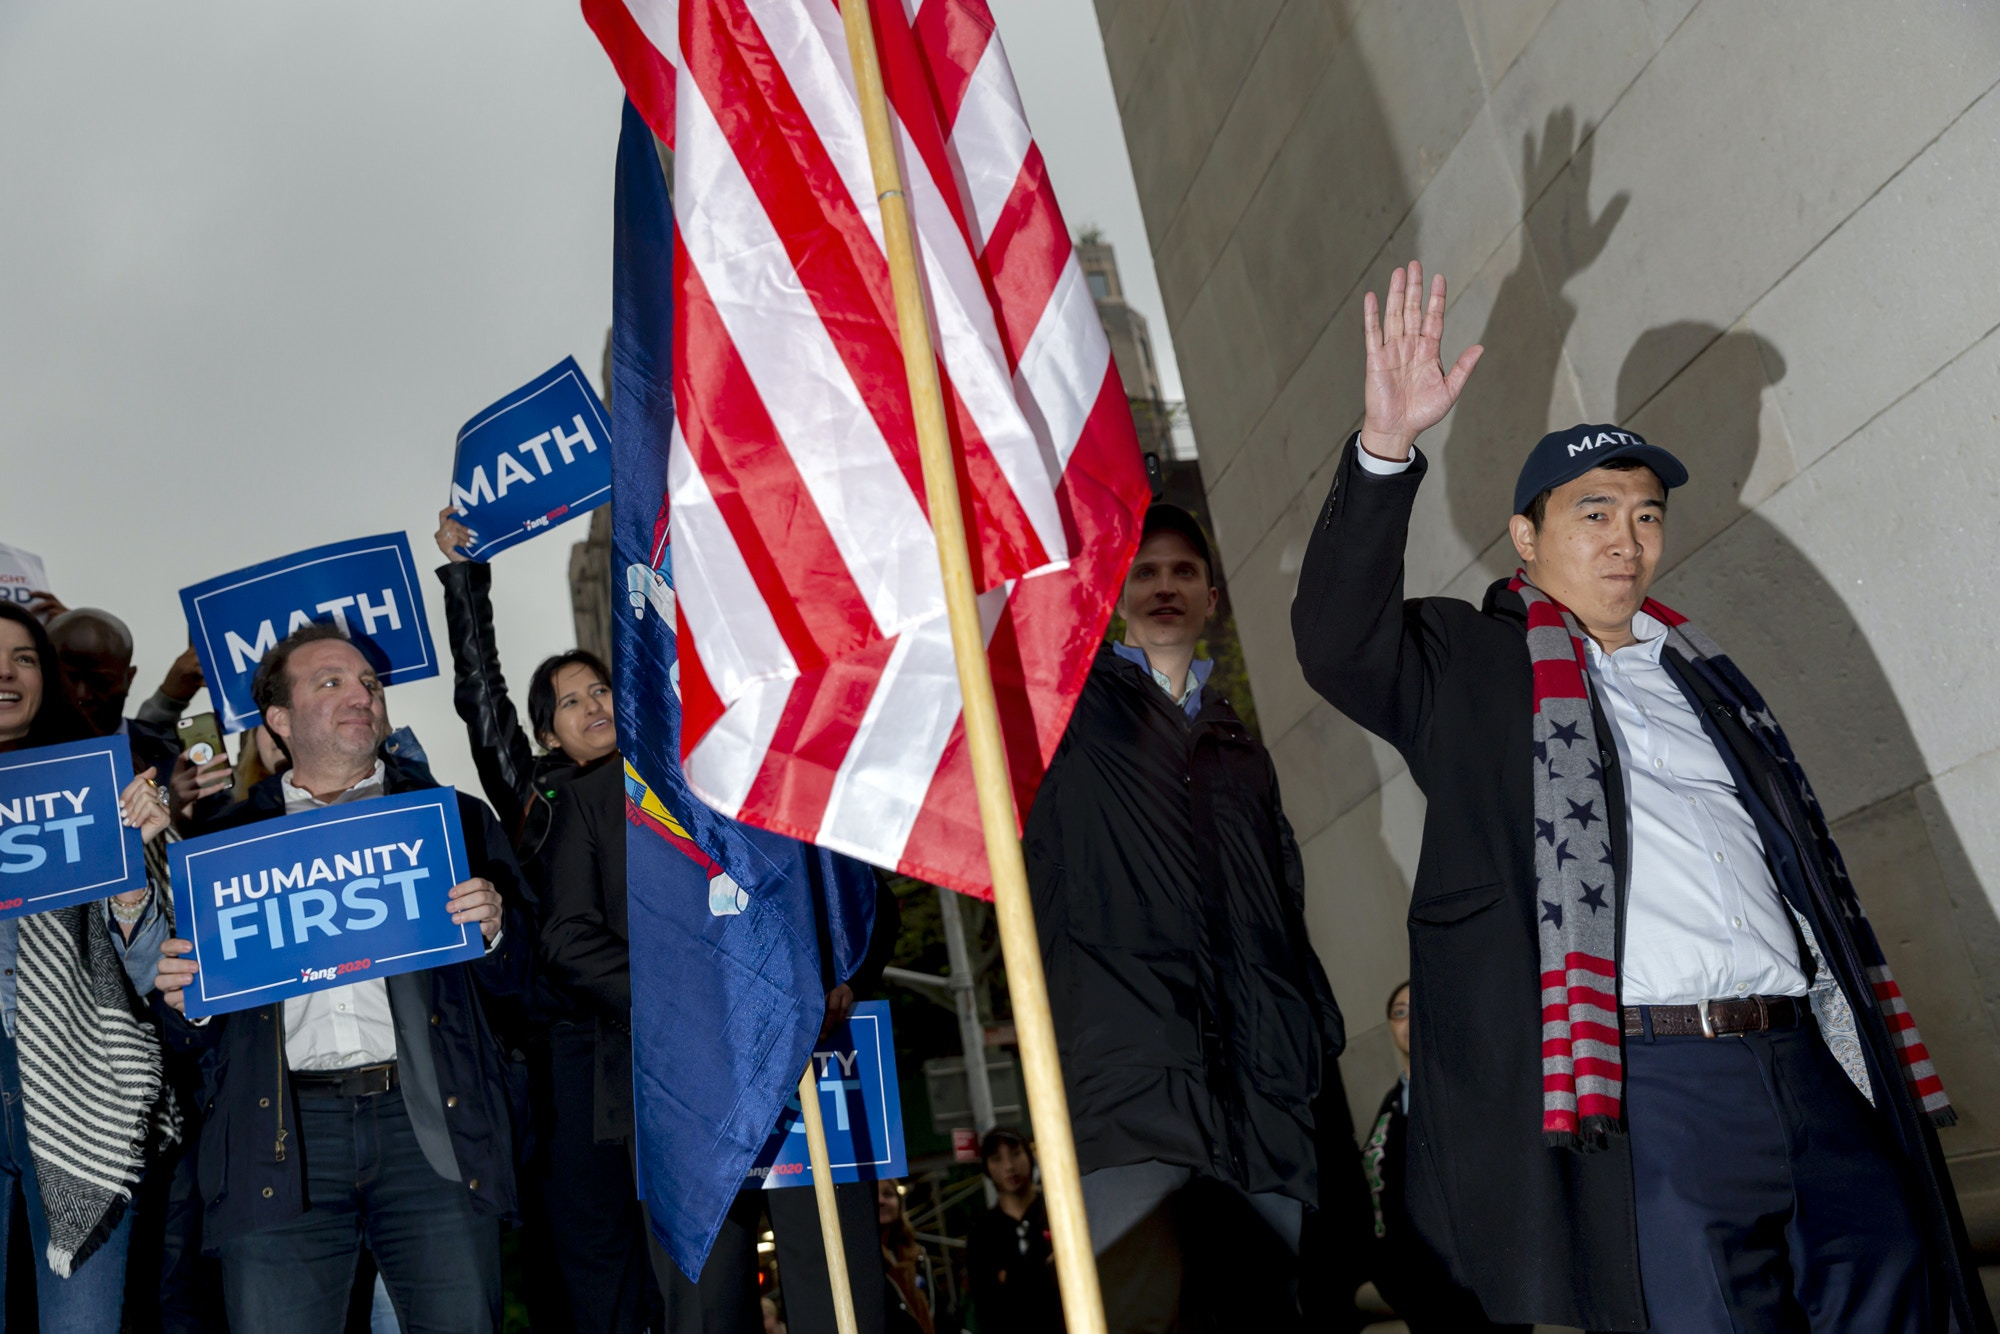 Andrew Yang, founder of Venture for America and 2020 Democratic presidential candidate, waves during a campaign rally in New York, U.S., on Tuesday, May 14, 2019. Yang, dubbed the 'internet candidate' by some, has developed a relatively niche following because of his platform that touts the merits of universal basic income. Photographer: Mark Abramson/Bloomberg via Getty Images